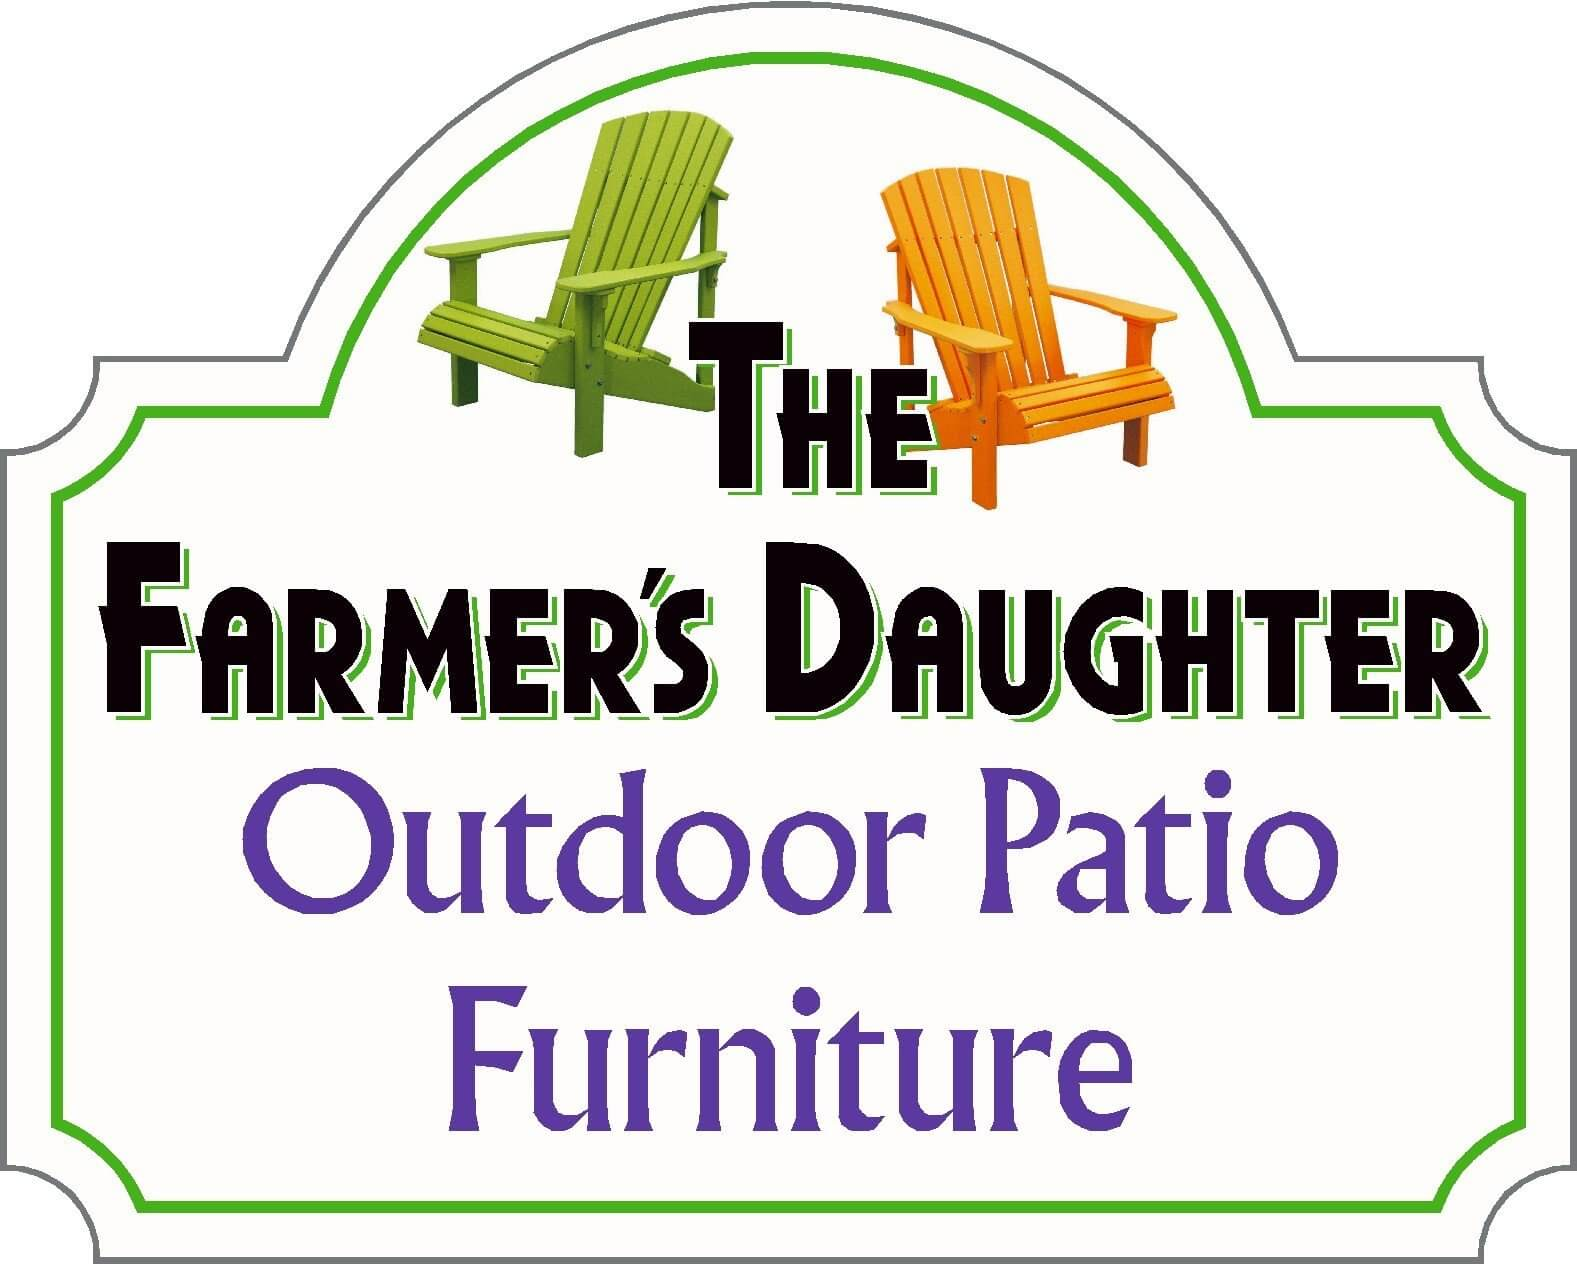 Quality Outdoor Furniture Buffalo, NY - Quality Outdoor Furniture Buffalo, NY Patio Furniture The